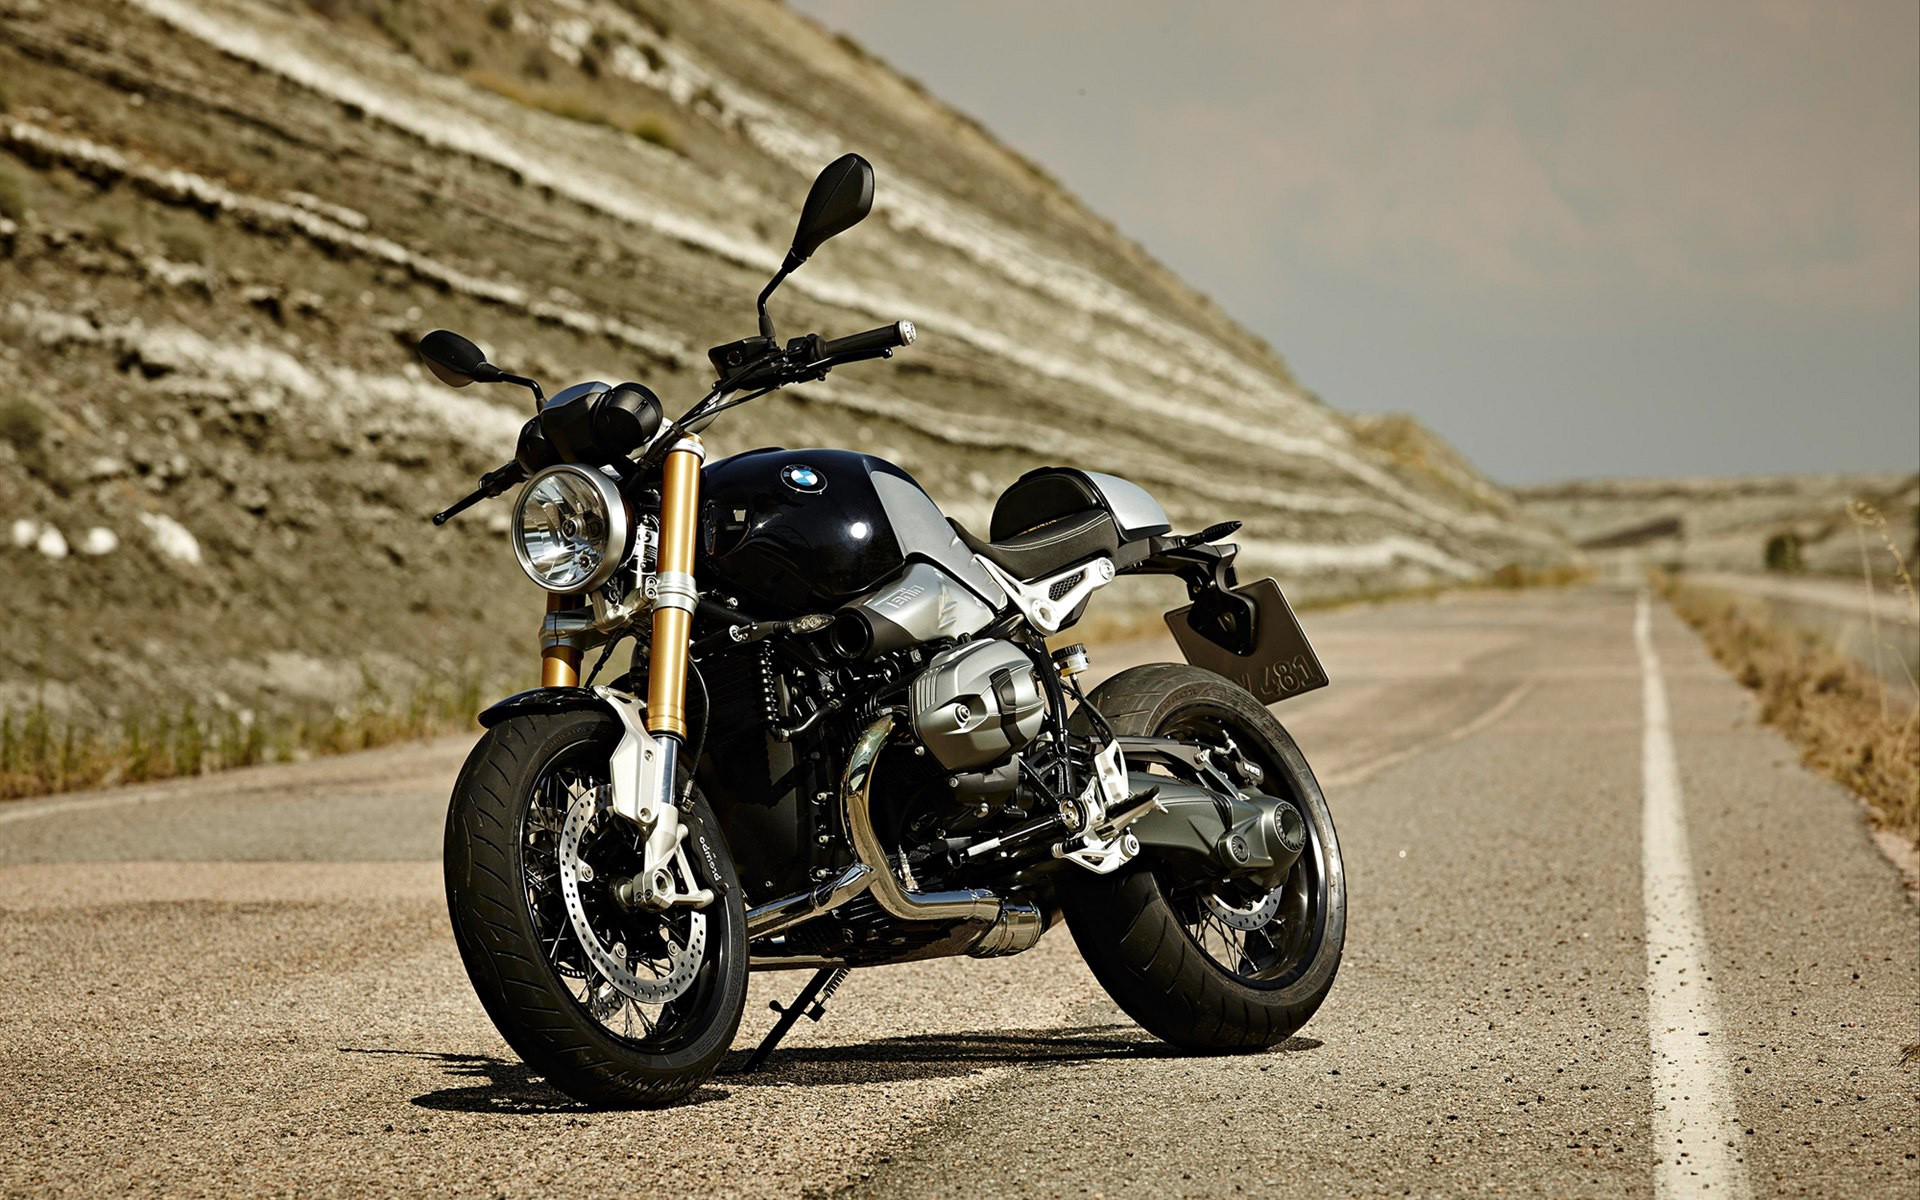 BMW R NINET HD Bikes 4k Wallpapers Images Backgrounds Photos